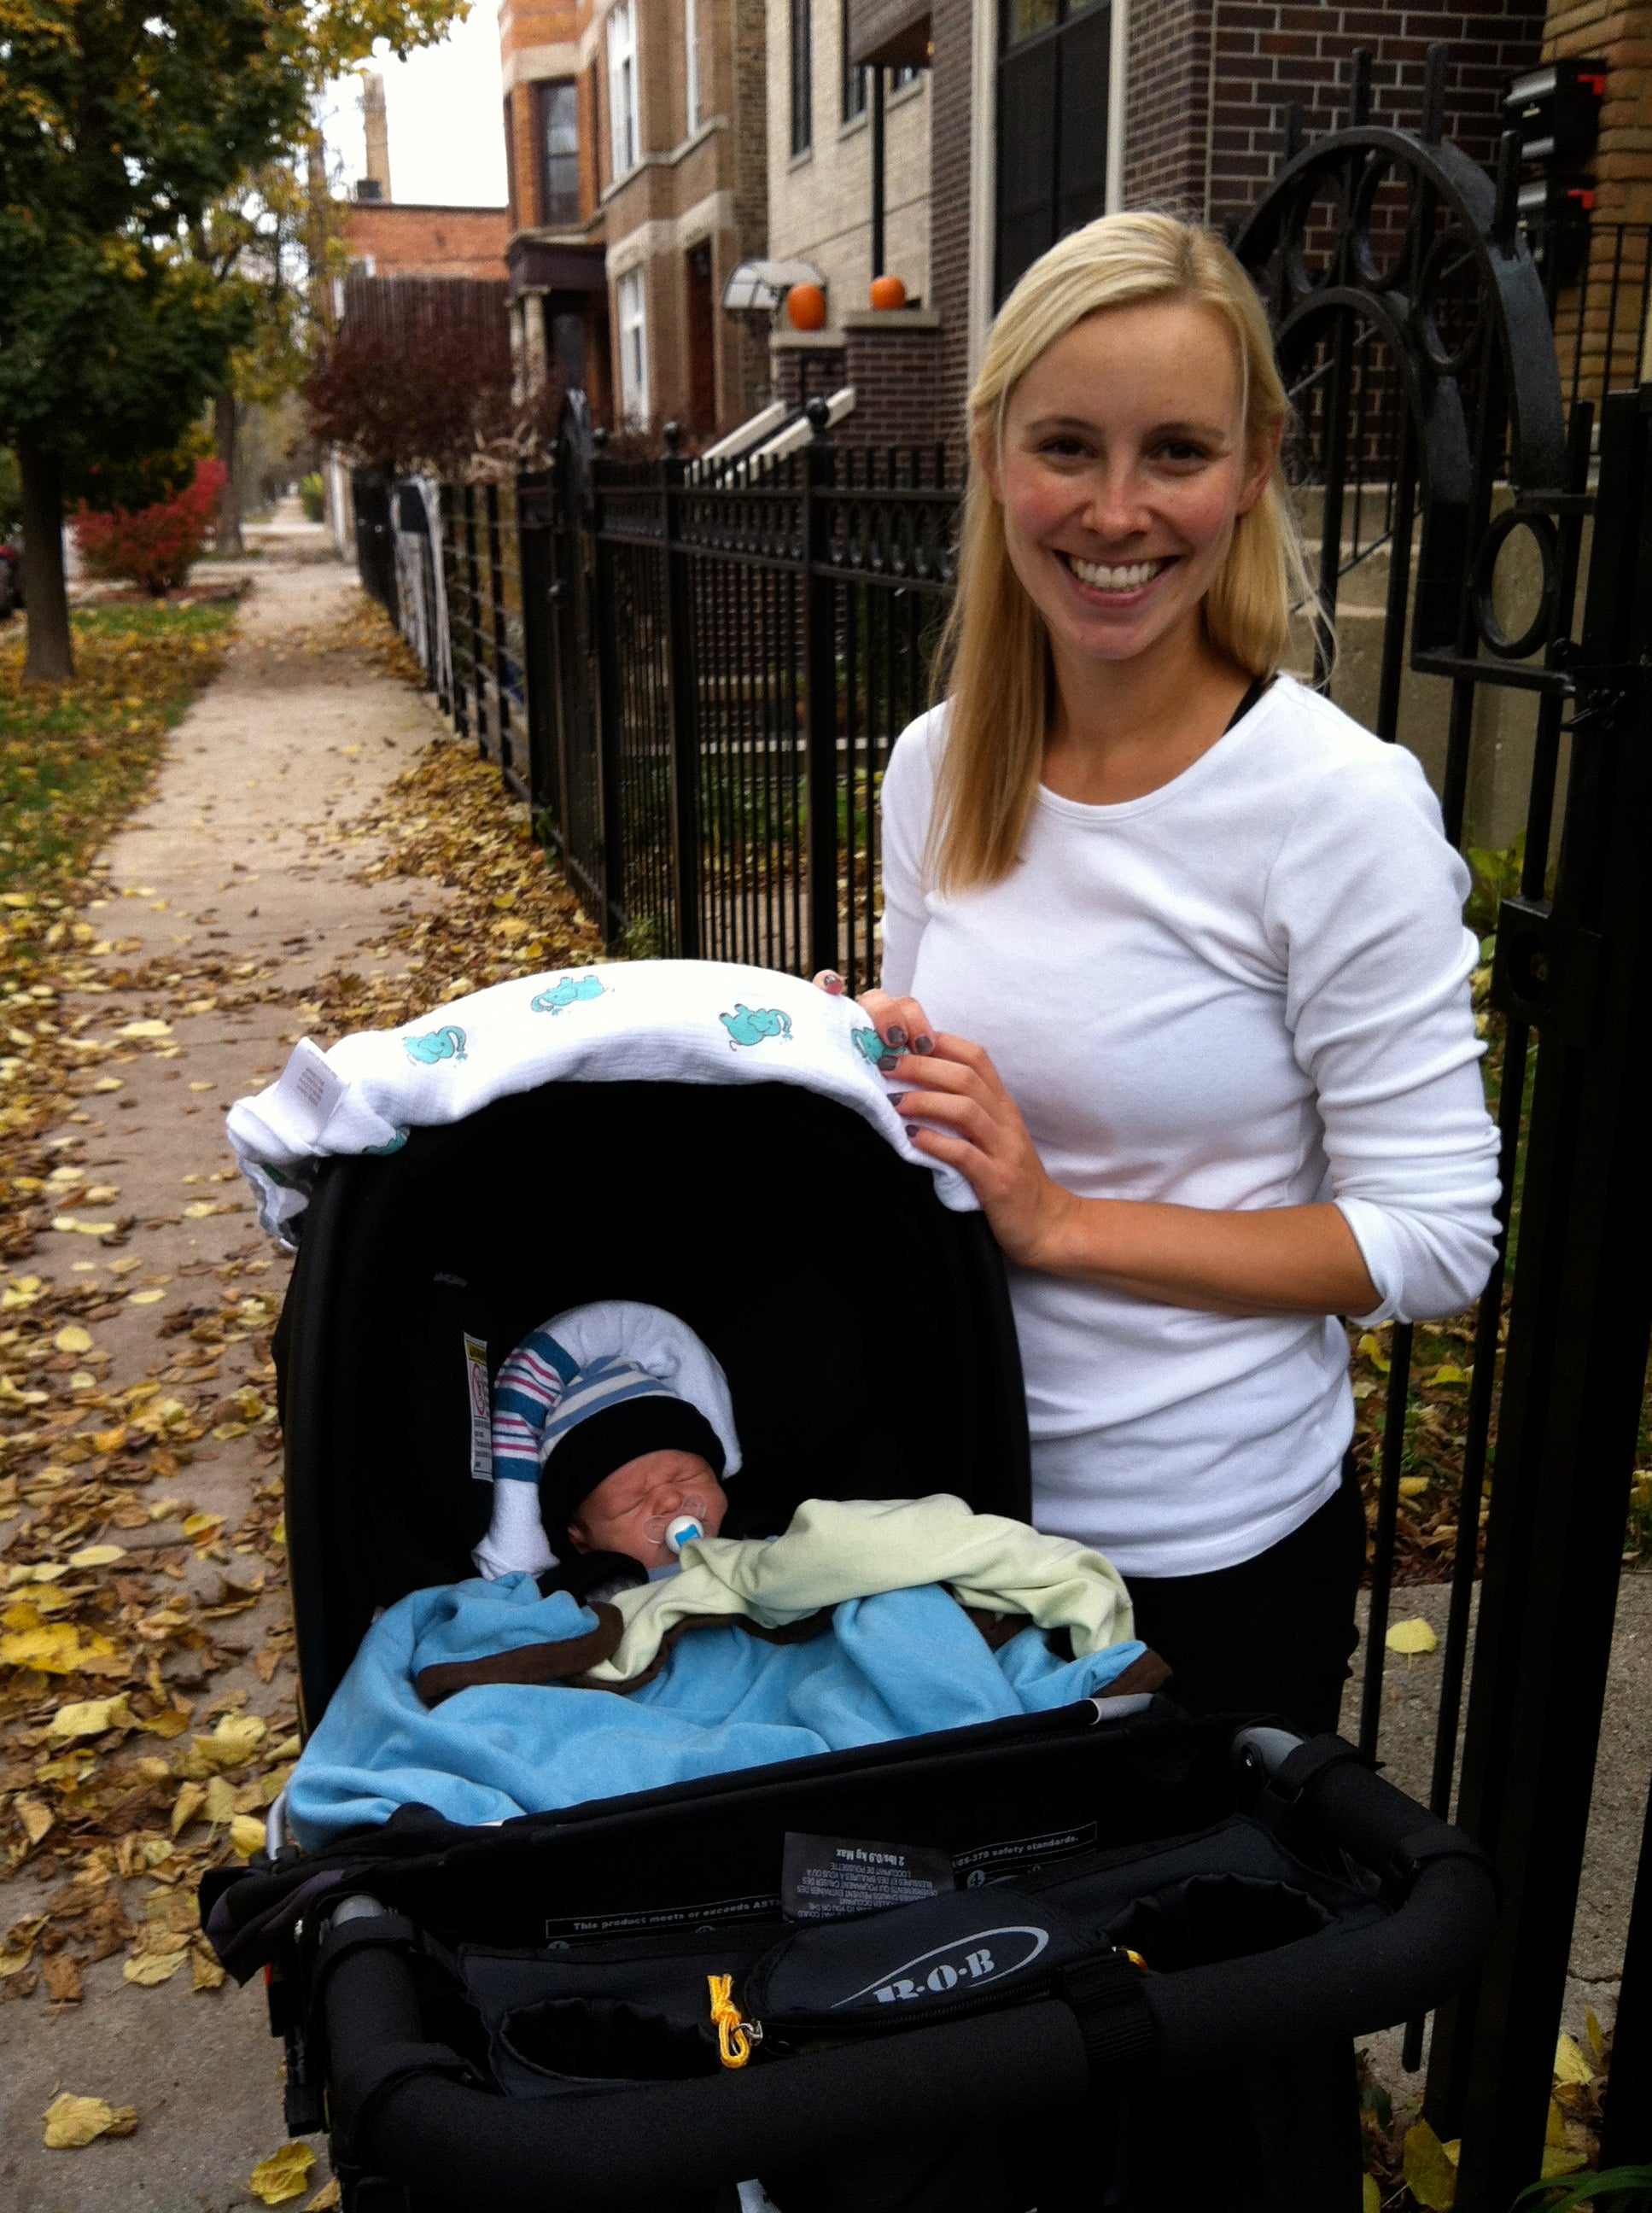 Mom and Baby, Baby in stroller, Fall day